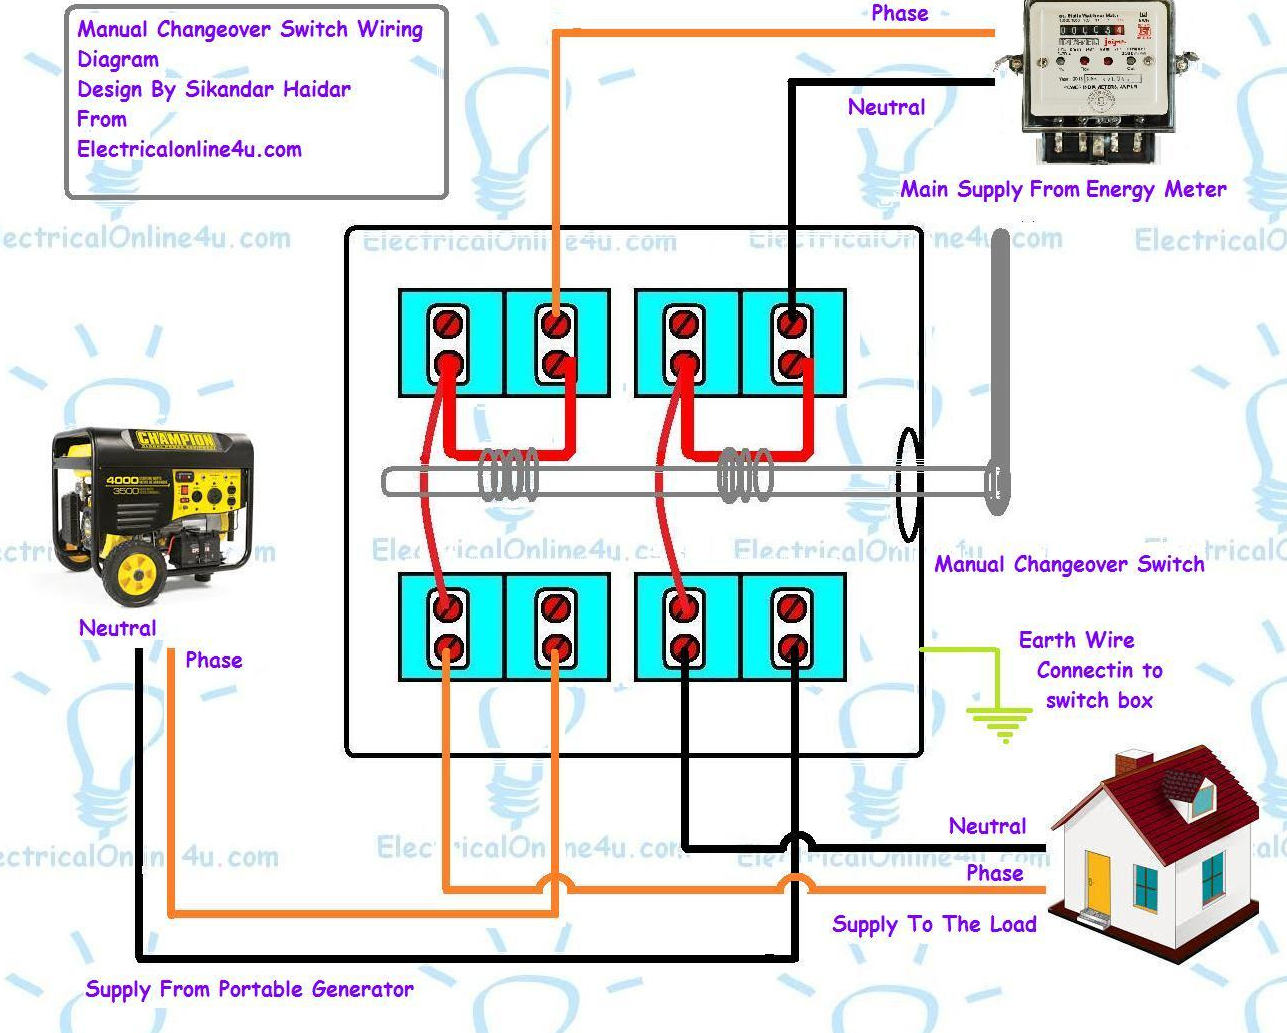 manual changeover switch wiring diagram for portable generator [ 1287 x 1033 Pixel ]